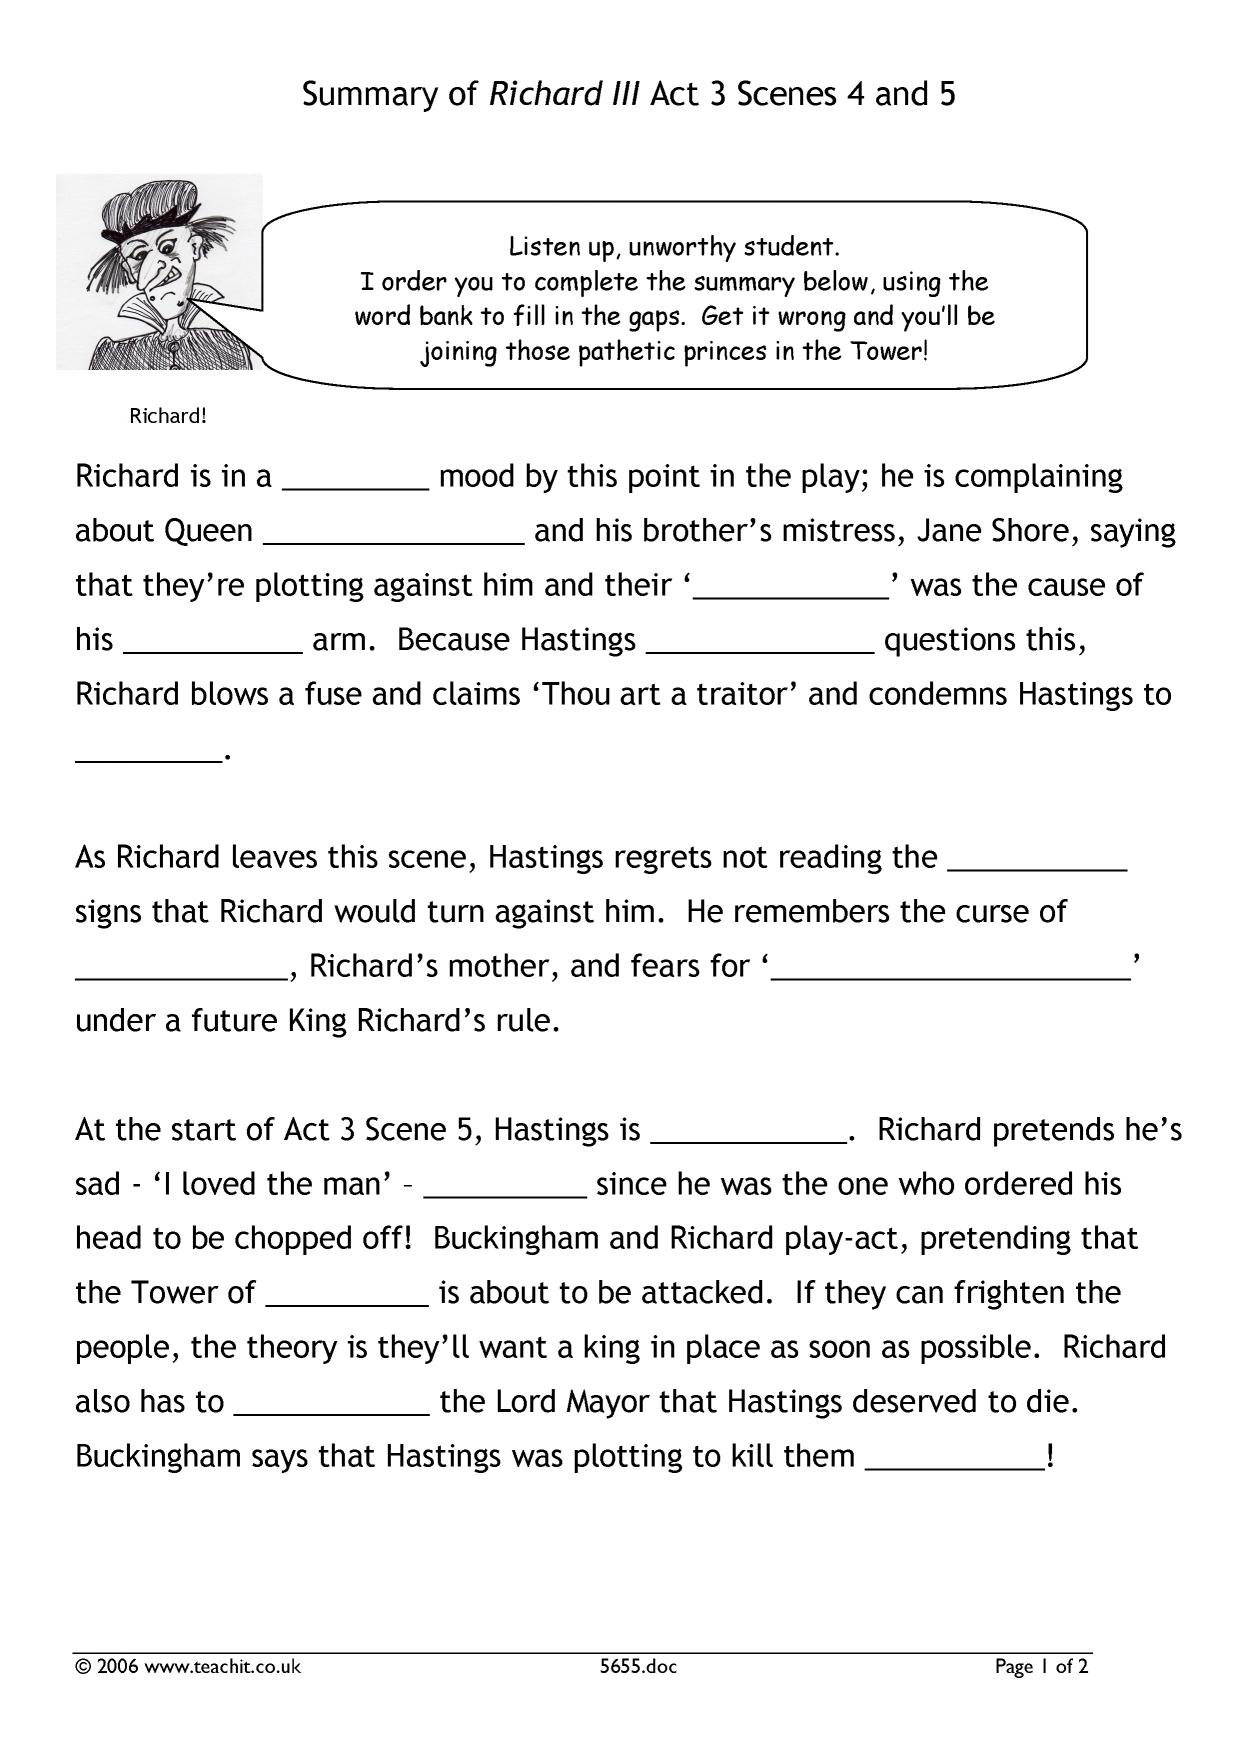 richard iii act ks plays key stage resources 0 preview ks3 plays a cloze summary of act 3 scenes 4 and 5